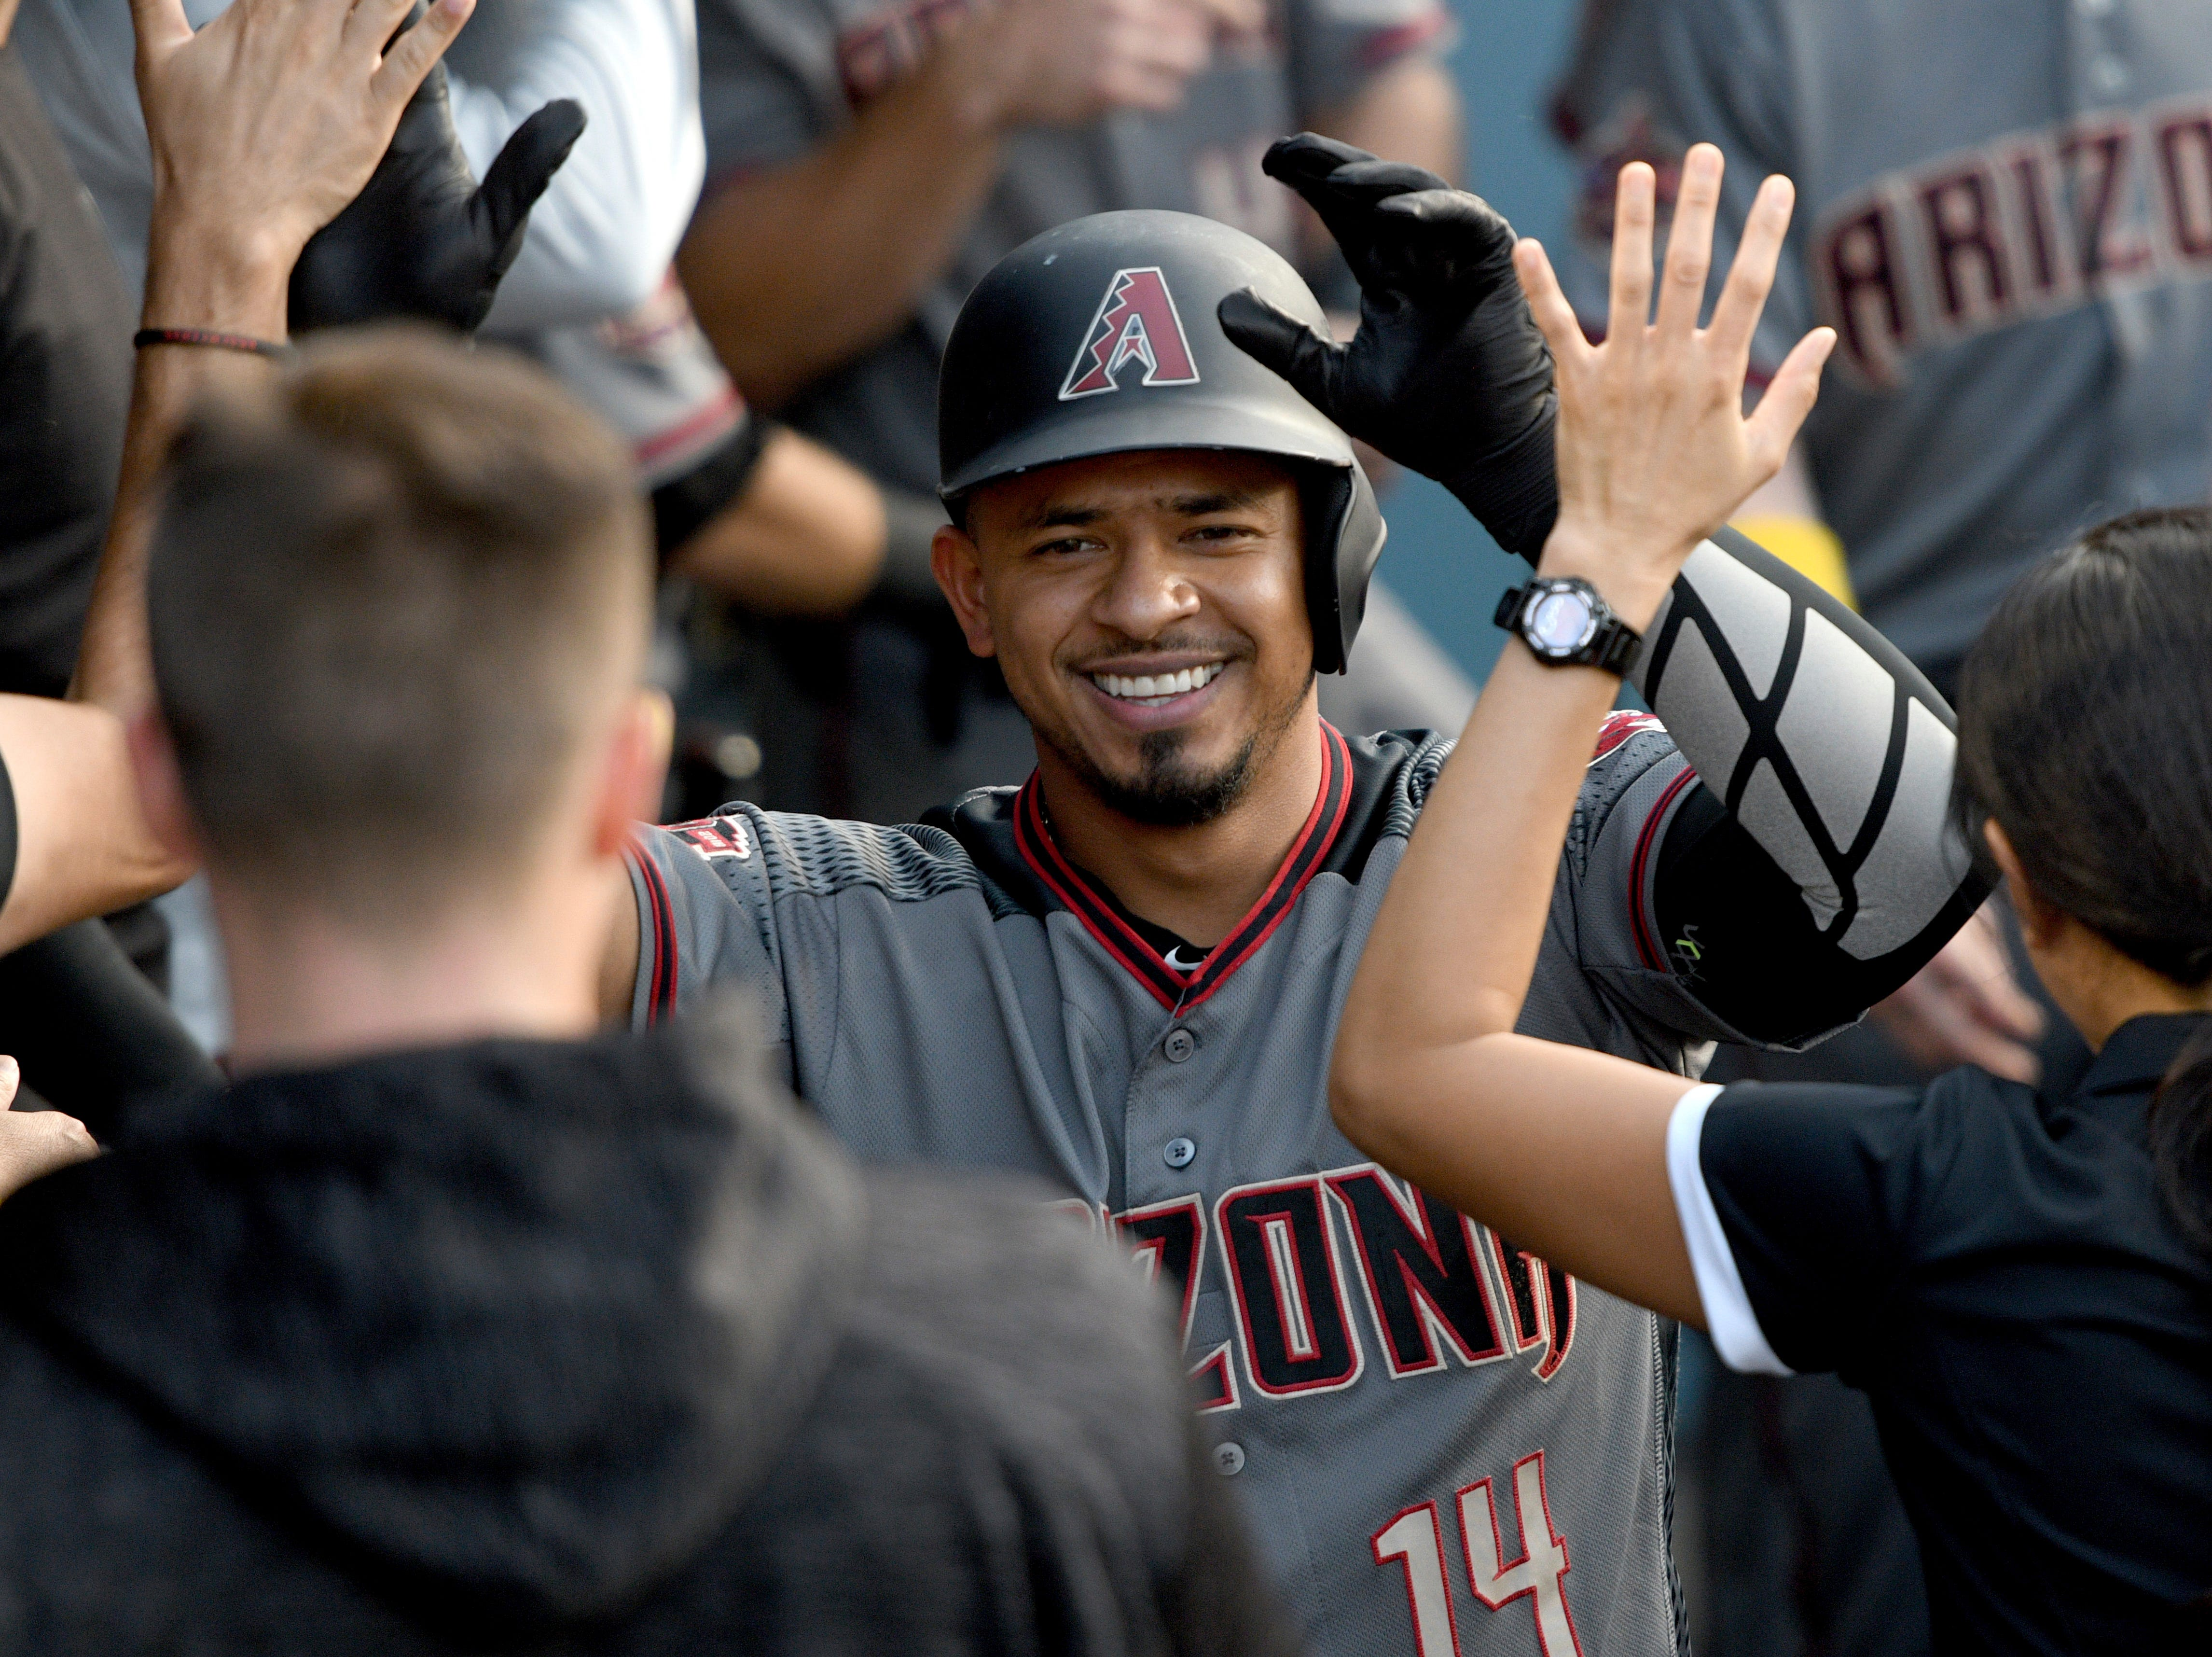 Arizona Diamondbacks' Eduardo Escobar (14) is congratulated in the dugout after hitting a solo home run during the second inning of a baseball game against the Los Angeles Dodgers, Saturday, Sept. 1, 2018, in Los Angeles.